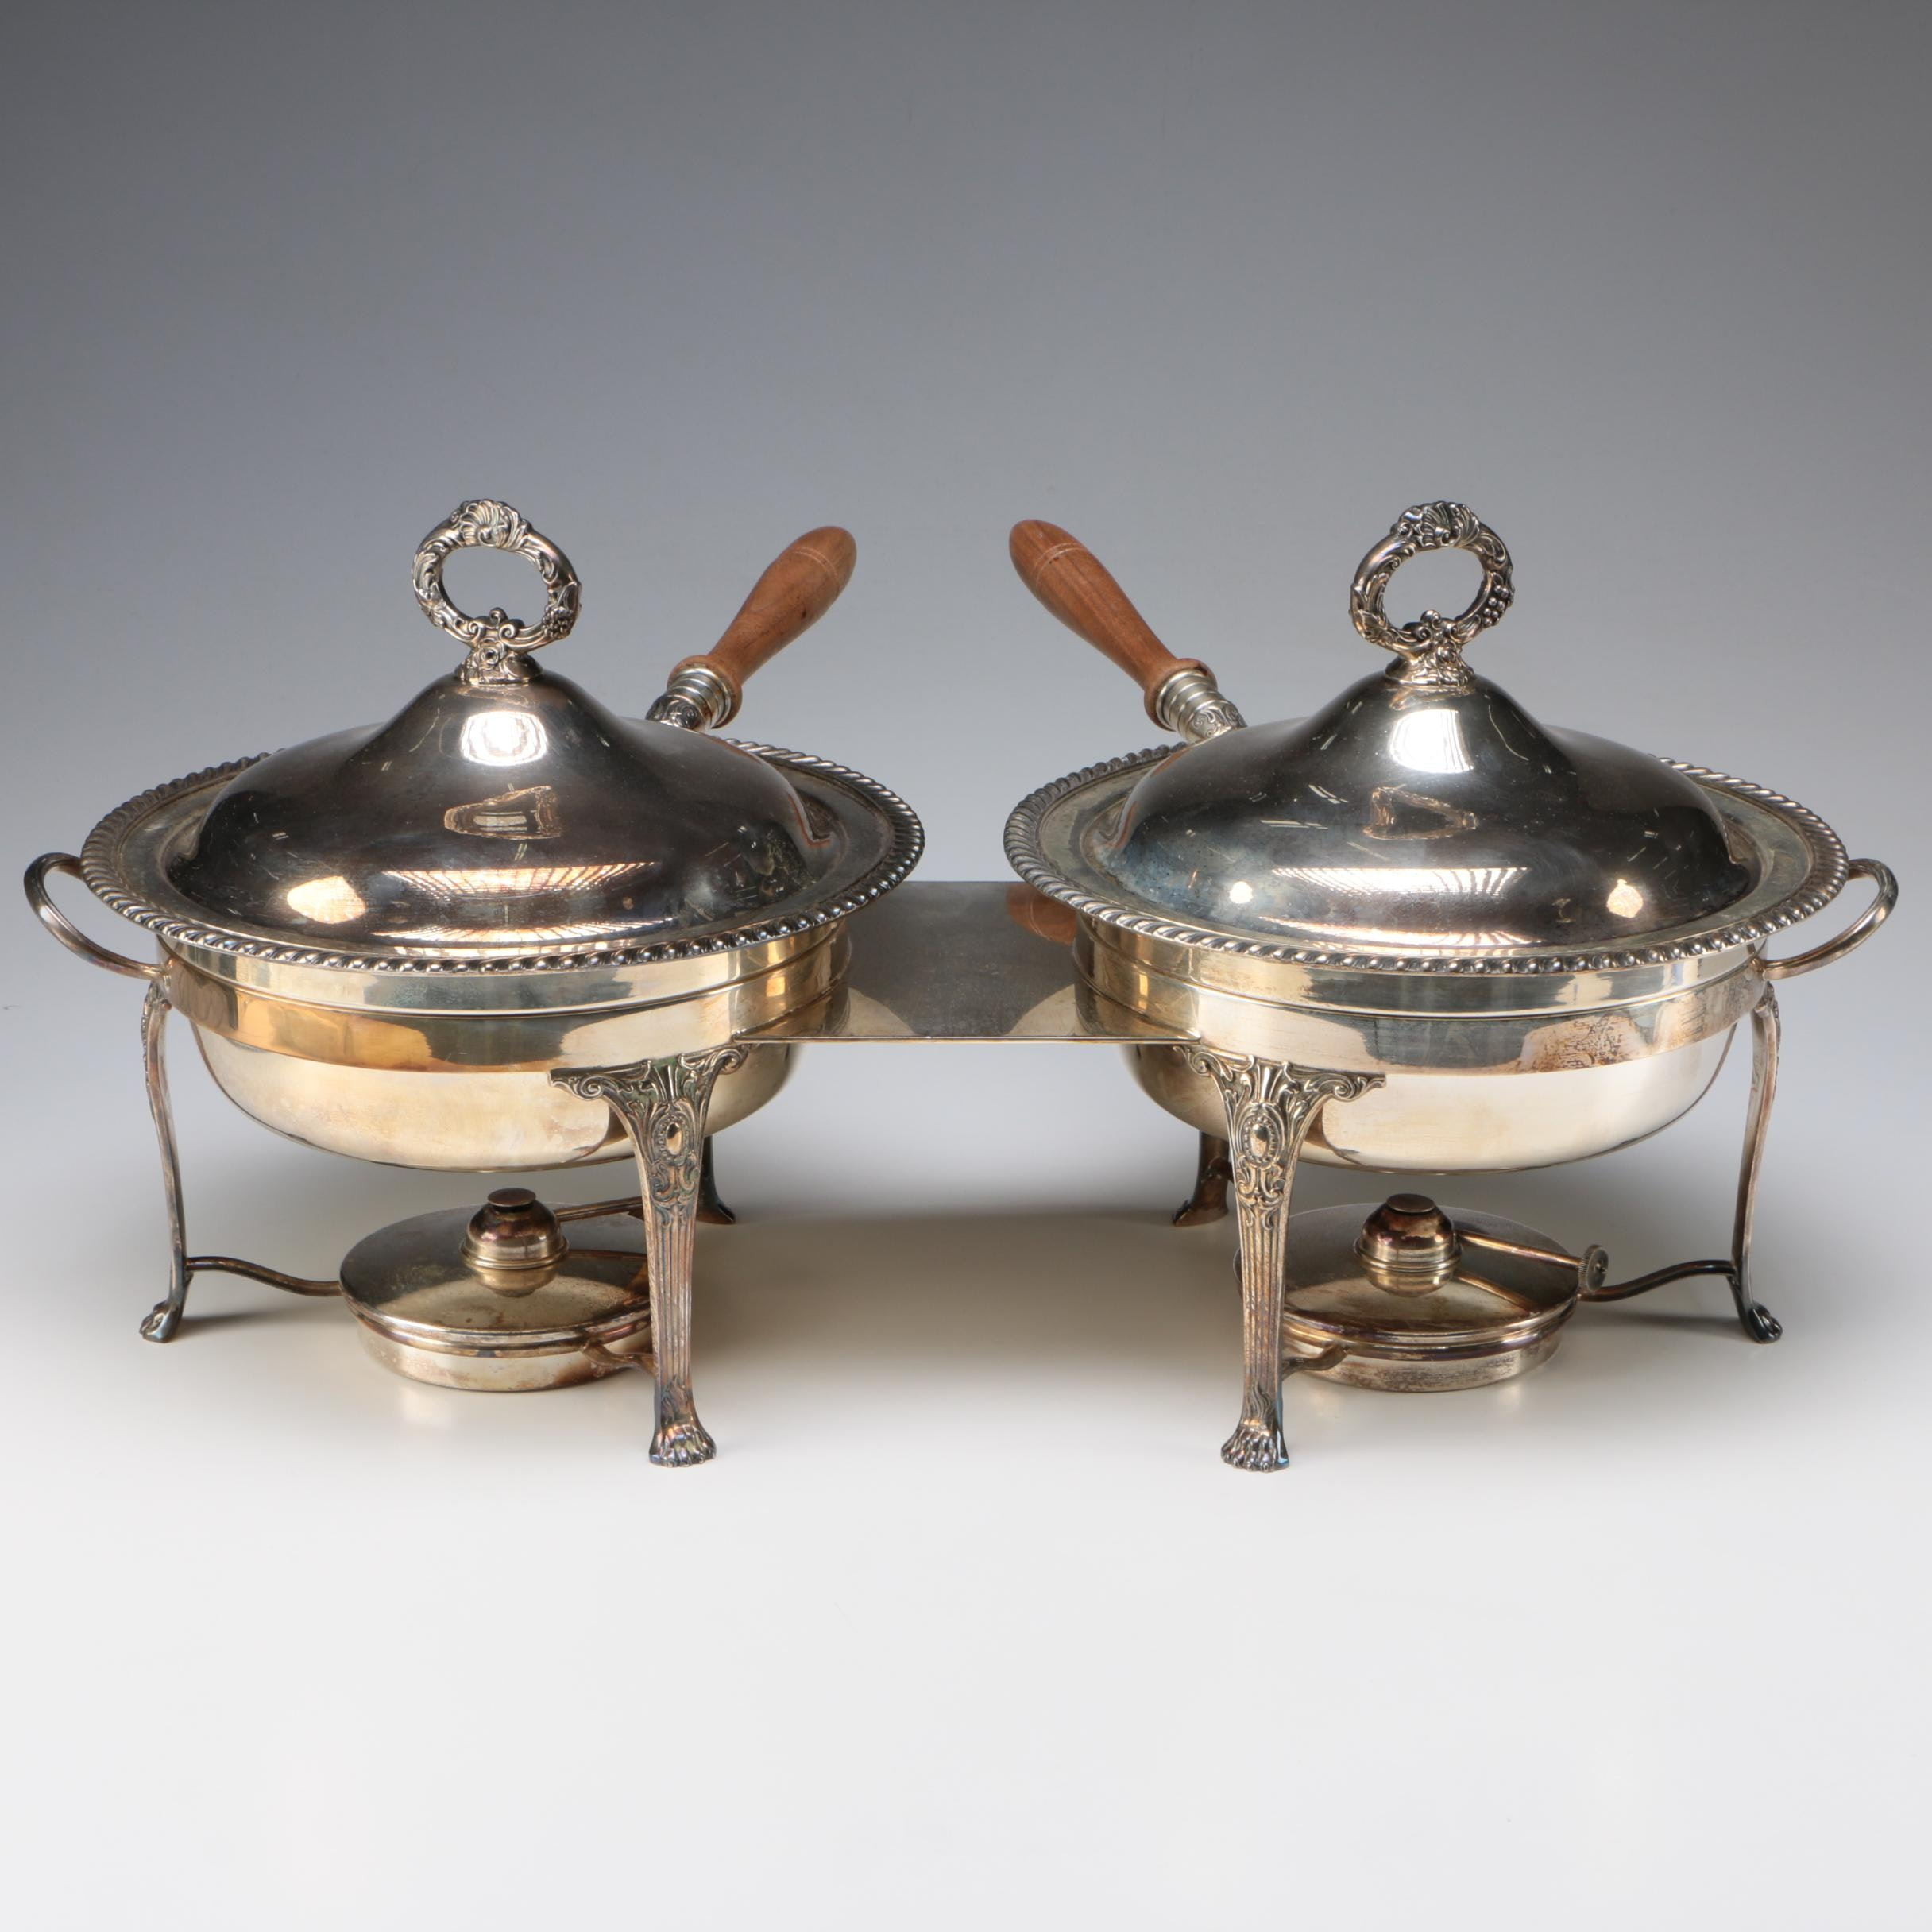 Friedman Silver Plate Dual Chafing Dish, Early 20th Century